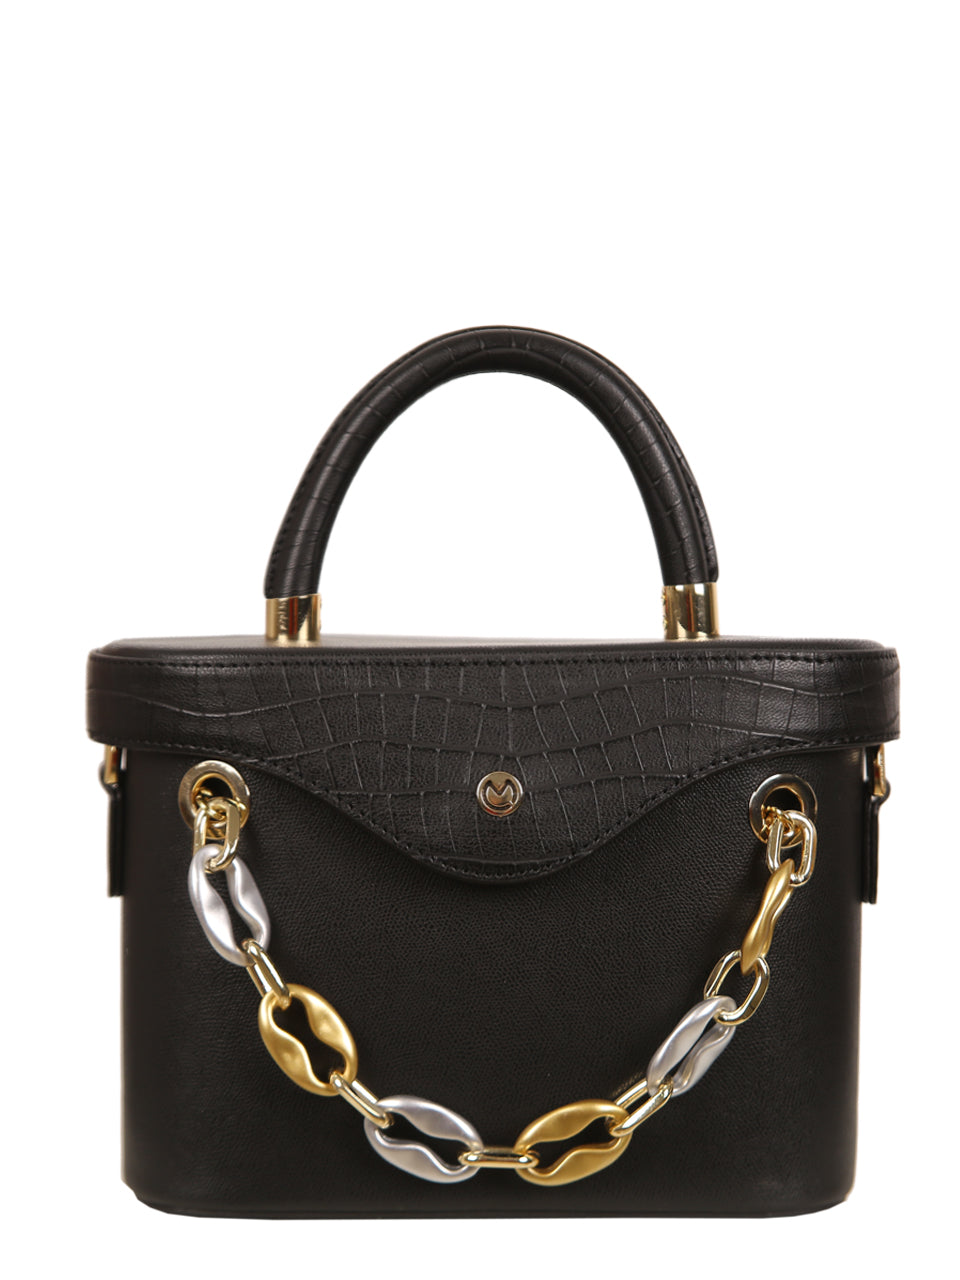 Mademoiselle Ginny Hand and Shoulder Bag - Black